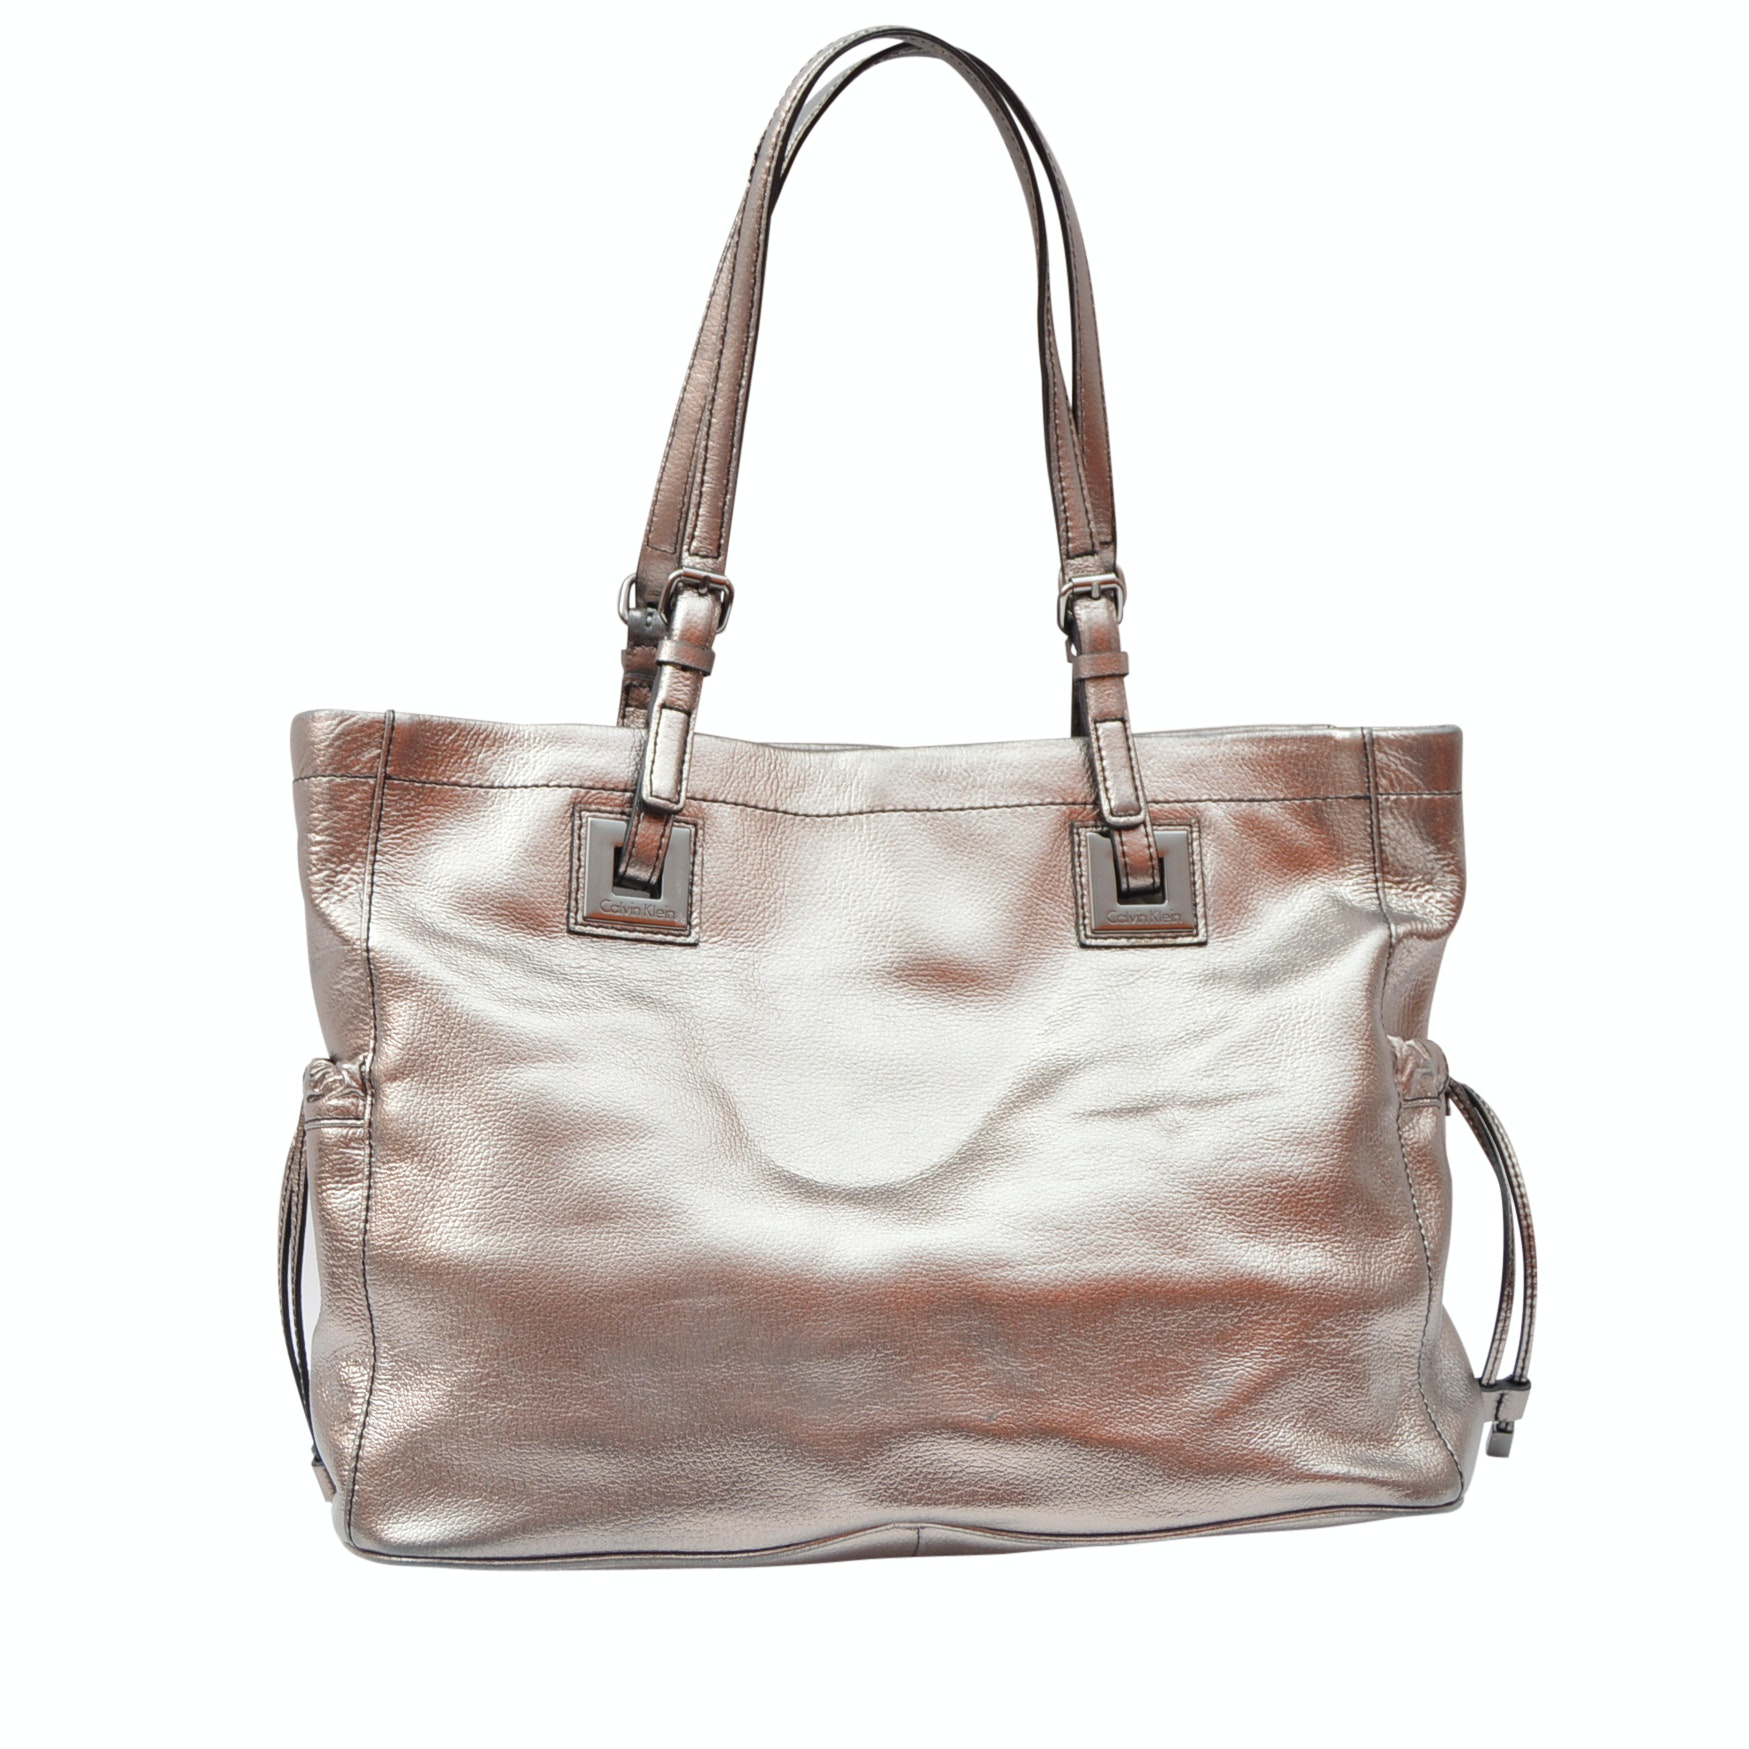 Calvin Klein Metallic Pewter Leather Tote Shoulder Bag